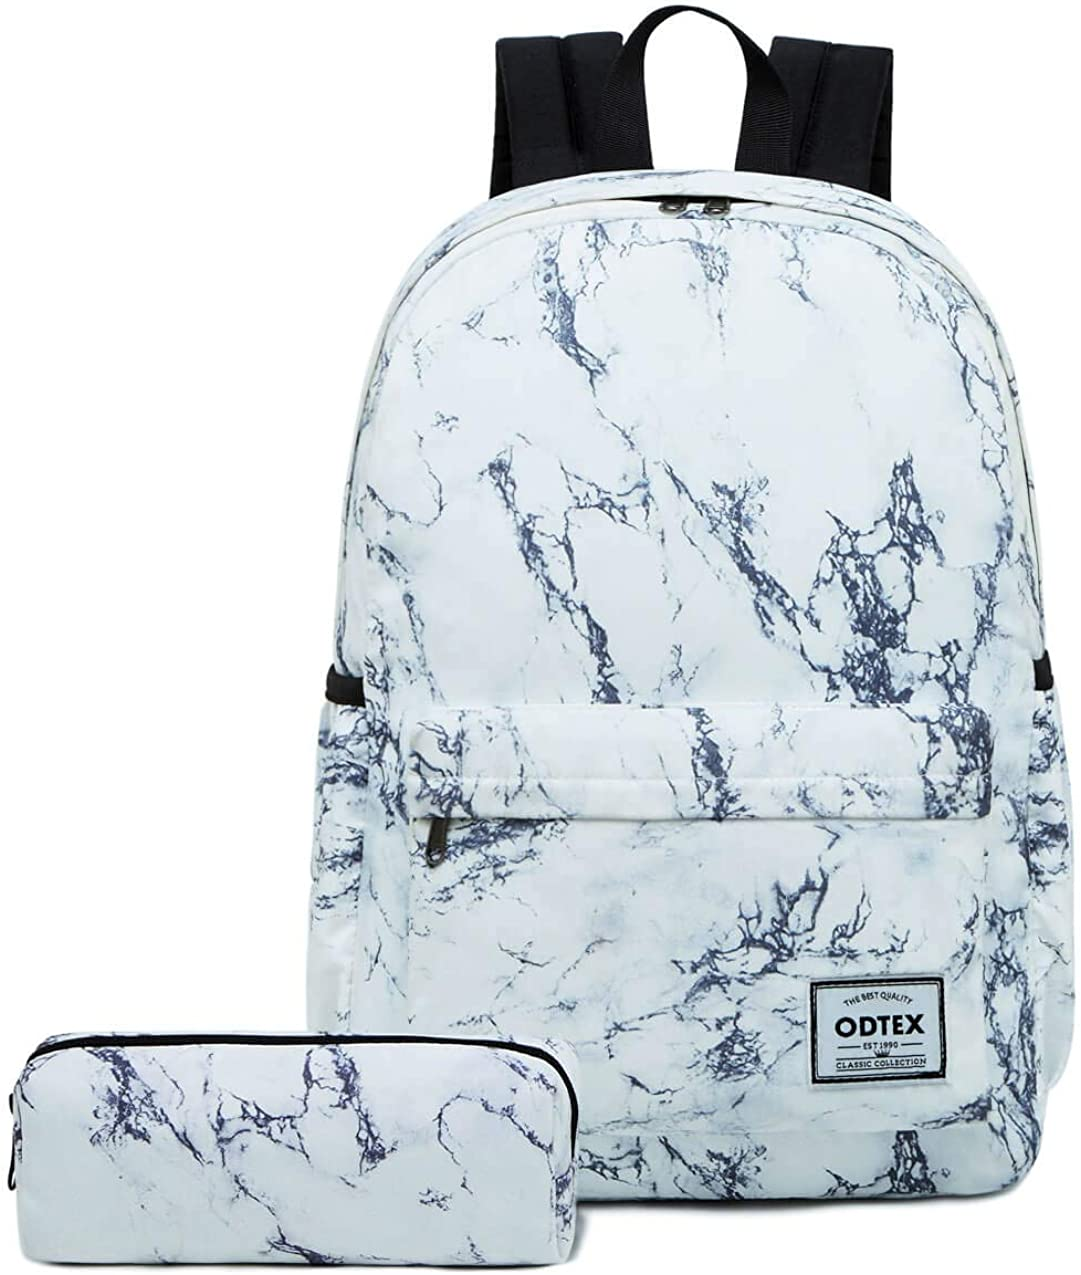 Travel Laptop Backpack,ODTEX Backpacks for Boys College School Computer Bag Fits 15 inch Laptop and Notebook